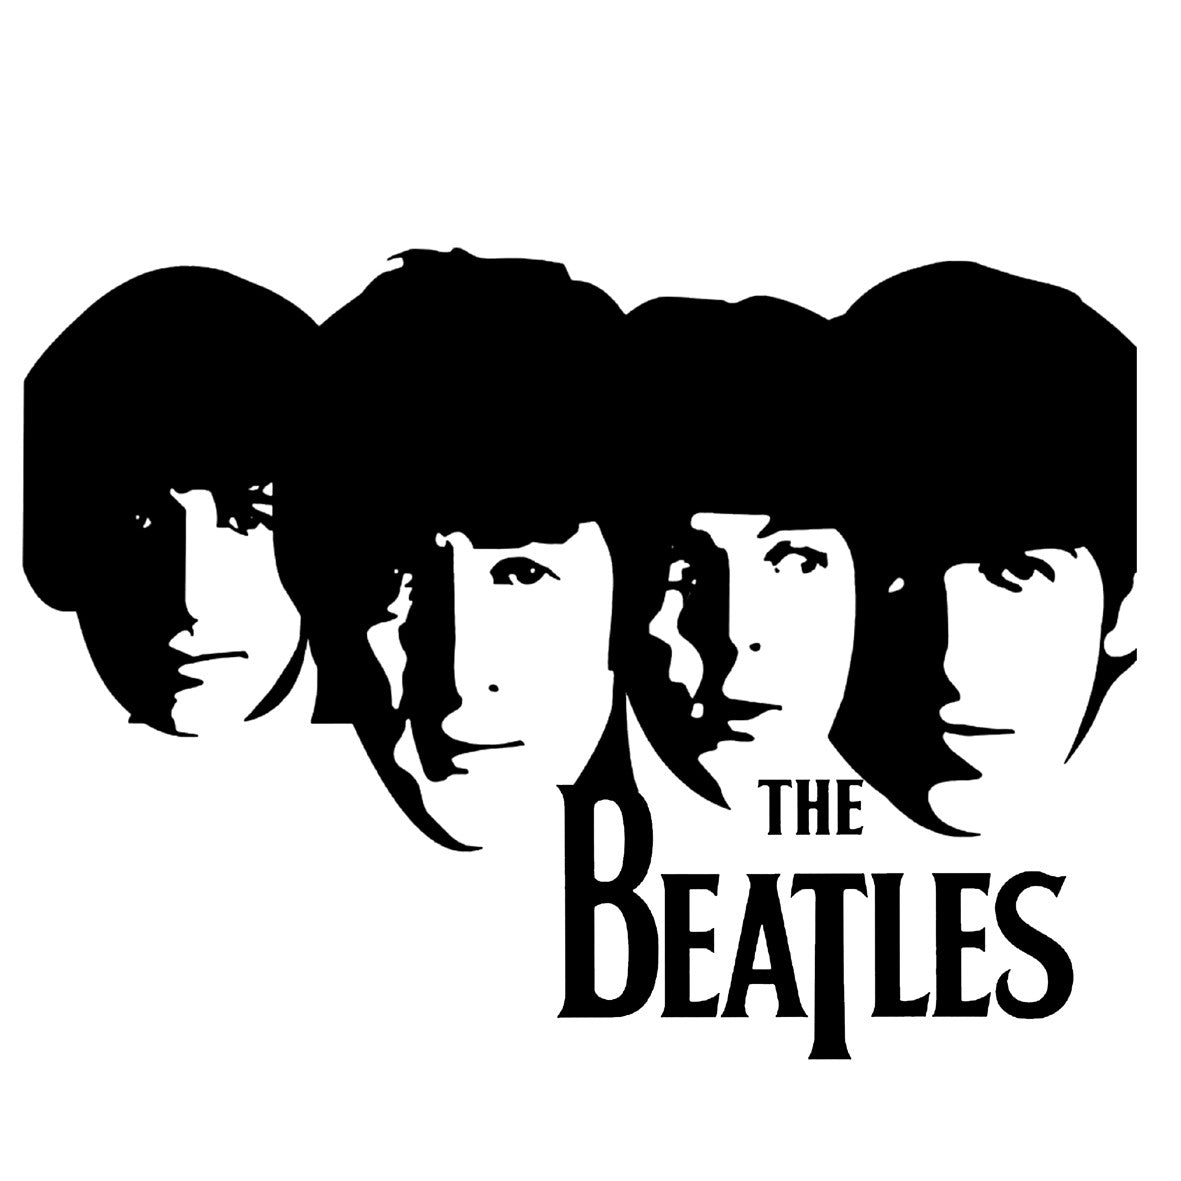 beatles faces 2 central t shirts